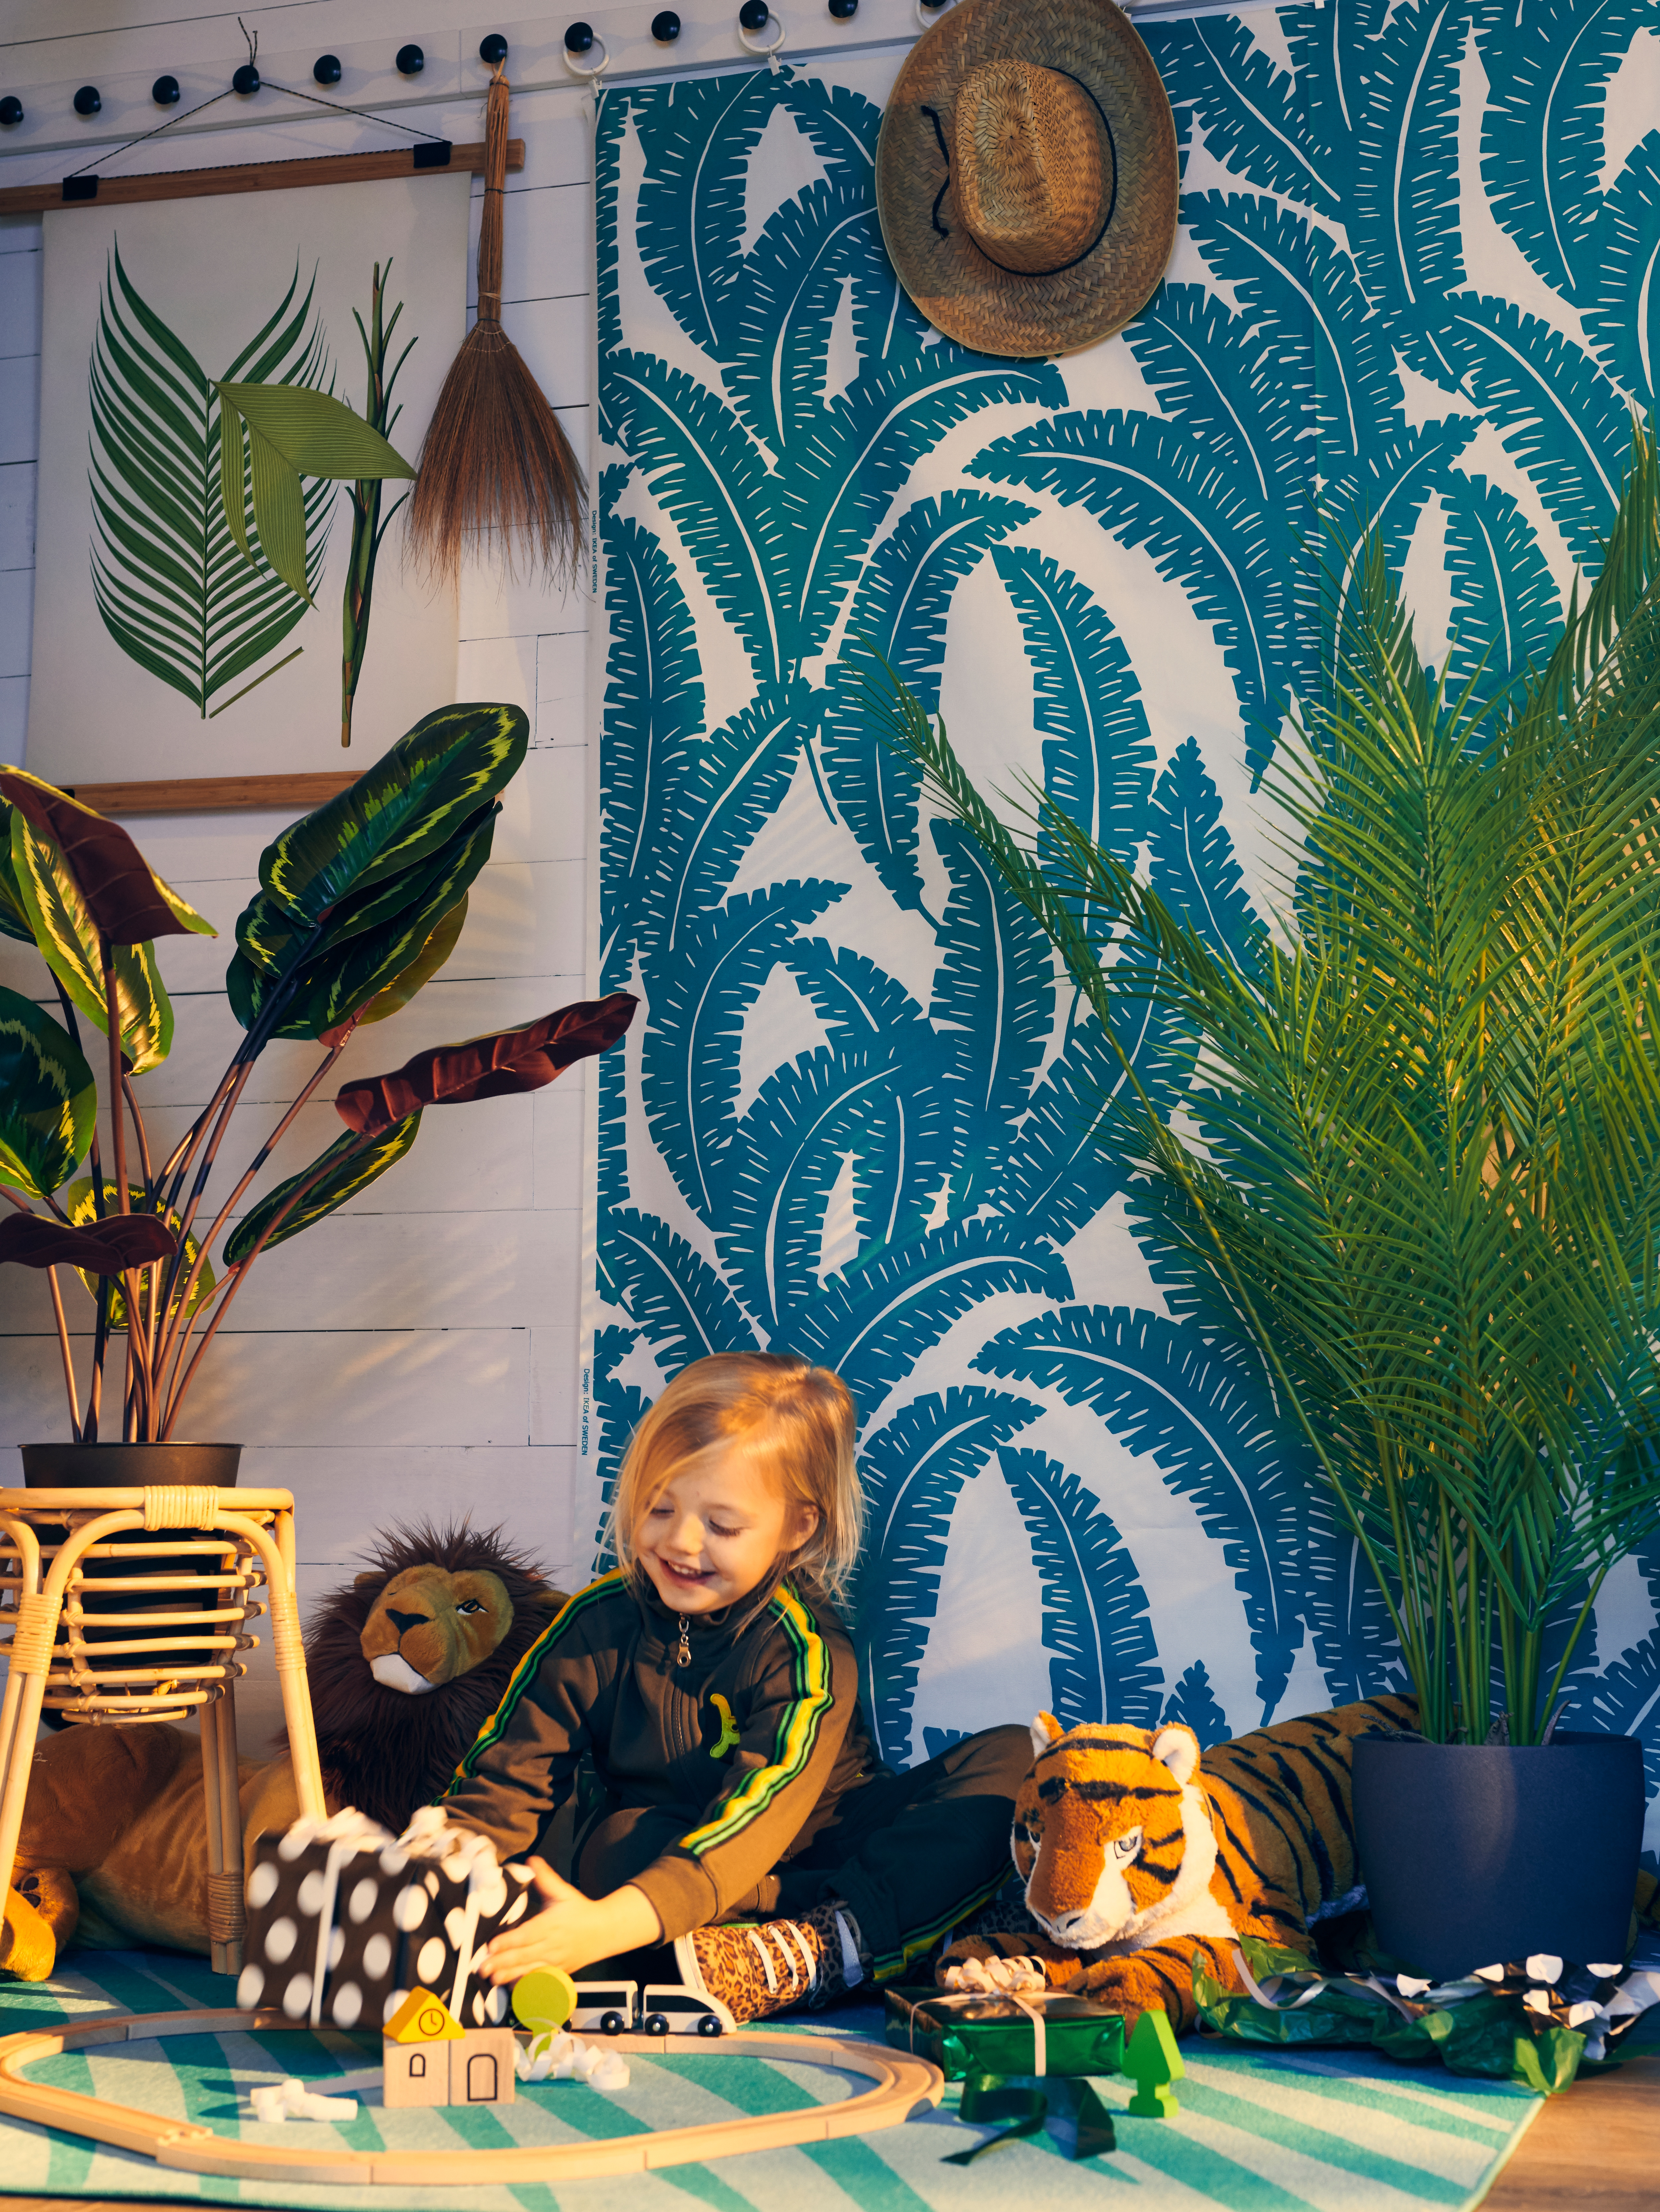 A child holding a present by two wild animal soft toys. The wall behind is covered in UGGLEMOTT fabric, with plants nearby.